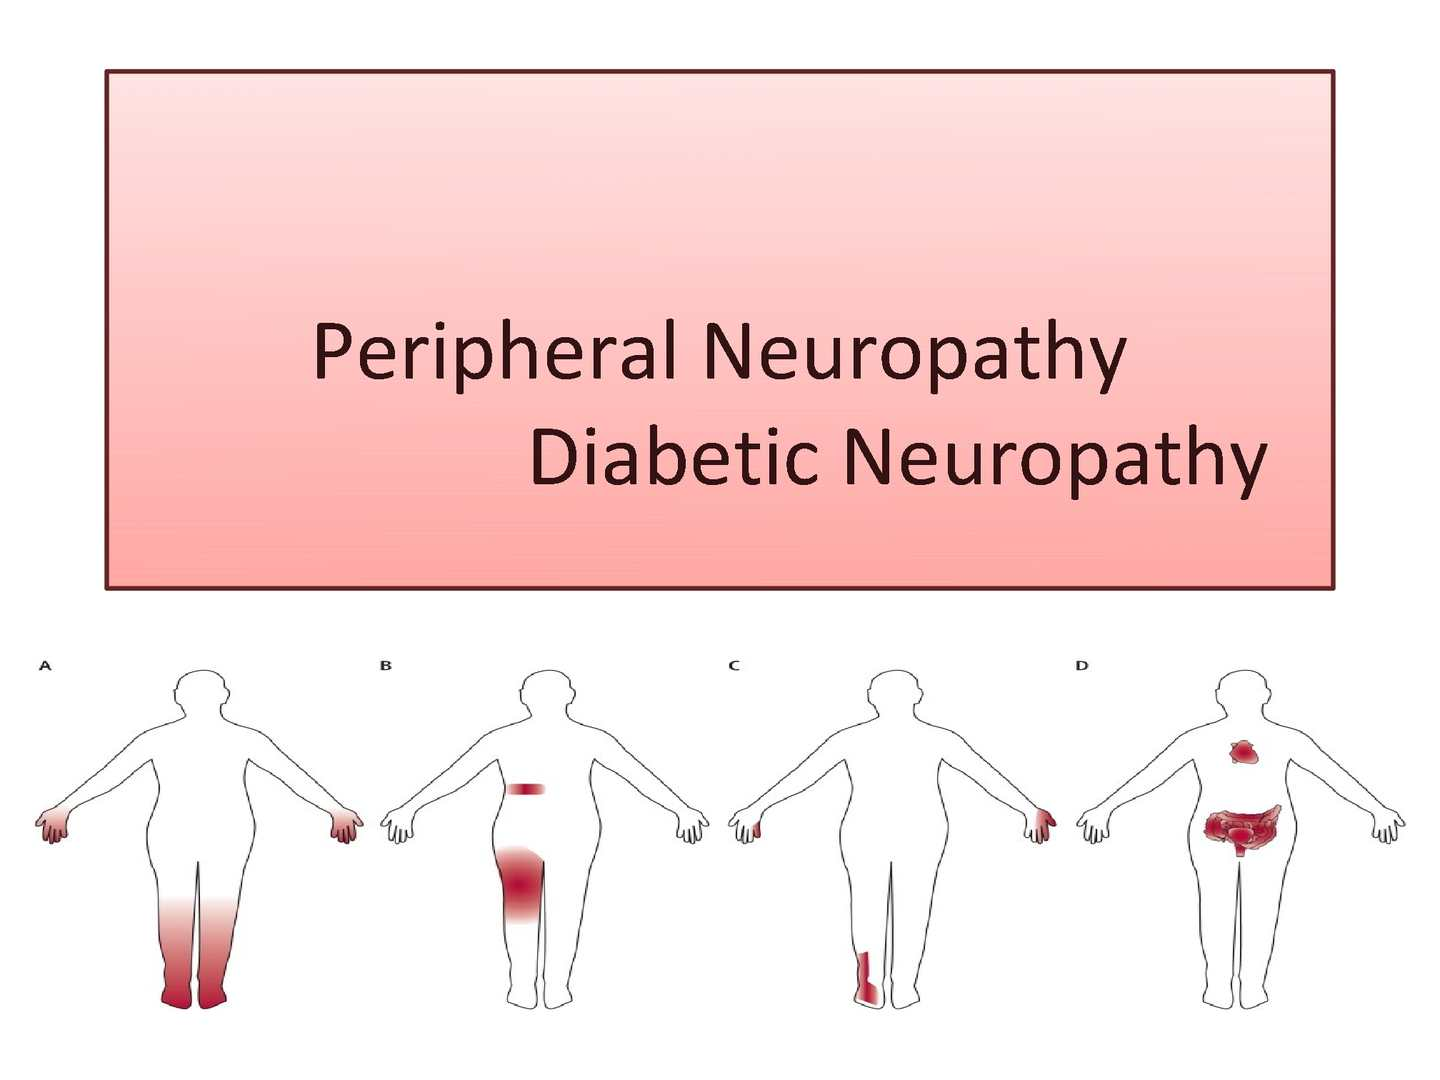 diabetes type 2 with peripheral neuropathy Peripheral neuropathy occurs when the nerves peripheral nerves in the  peripheral neuropathy is caused by other diseases and  warning signs of type 2 diabetes.